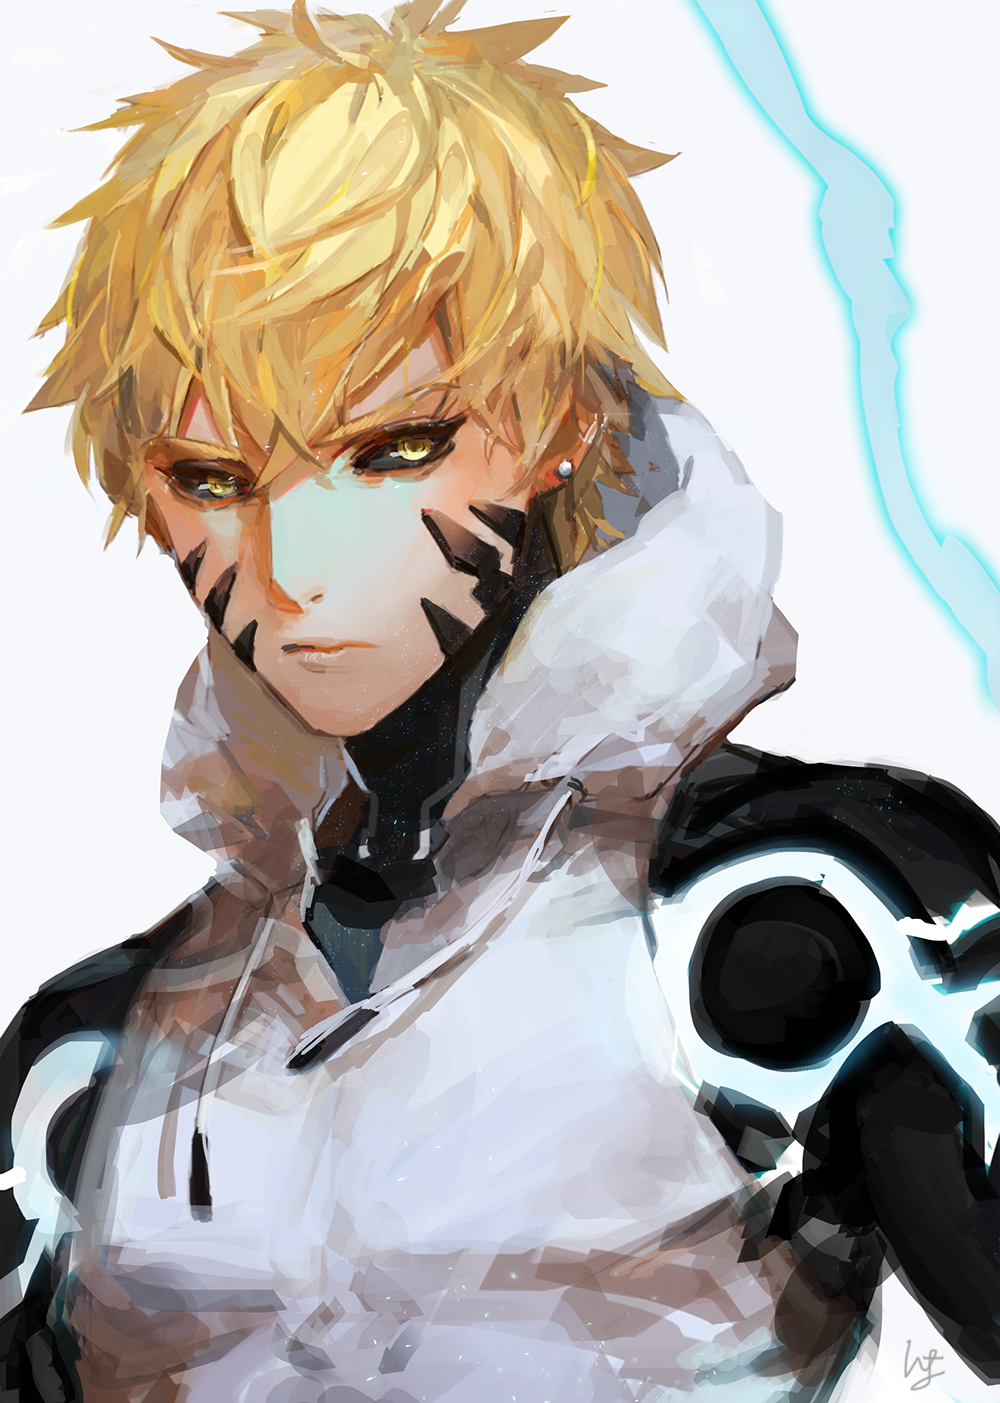 1boy black_sclera blonde_hair closed_mouth cyborg earrings electricity genos highres hood hoodie jewelry kamiya_miwo looking_at_viewer male_focus mechanical_arms one-punch_man signature simple_background solo torso upper_body white_hoodie yellow_eyes